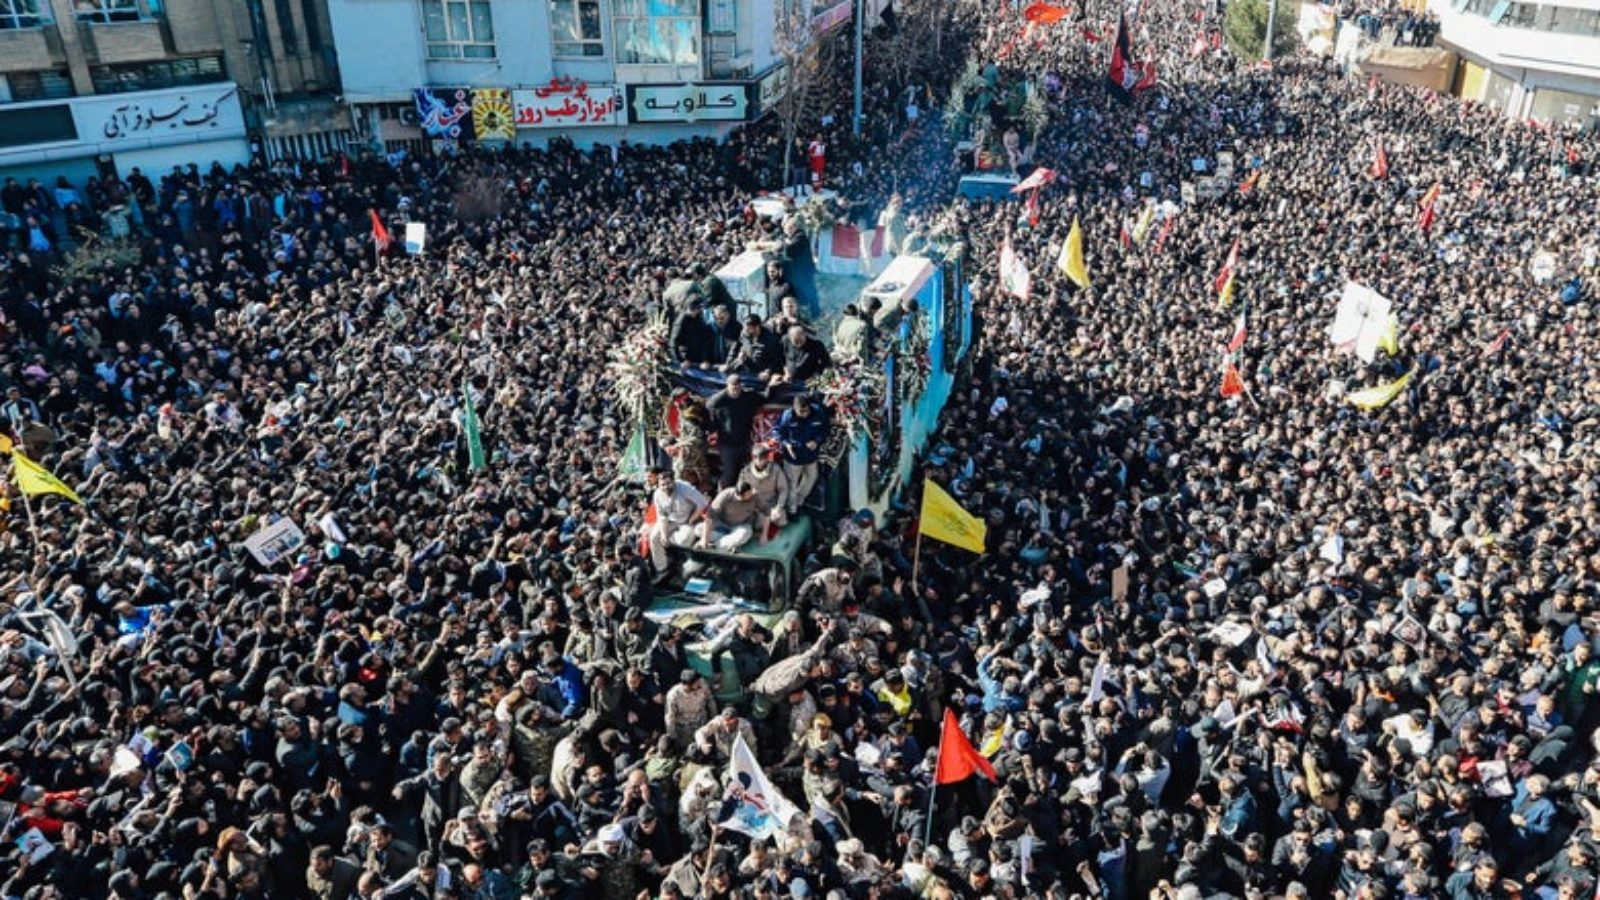 Thousands of Iranian mourners gather around a vehicle carrying the coffin of Qassem Soleimani.